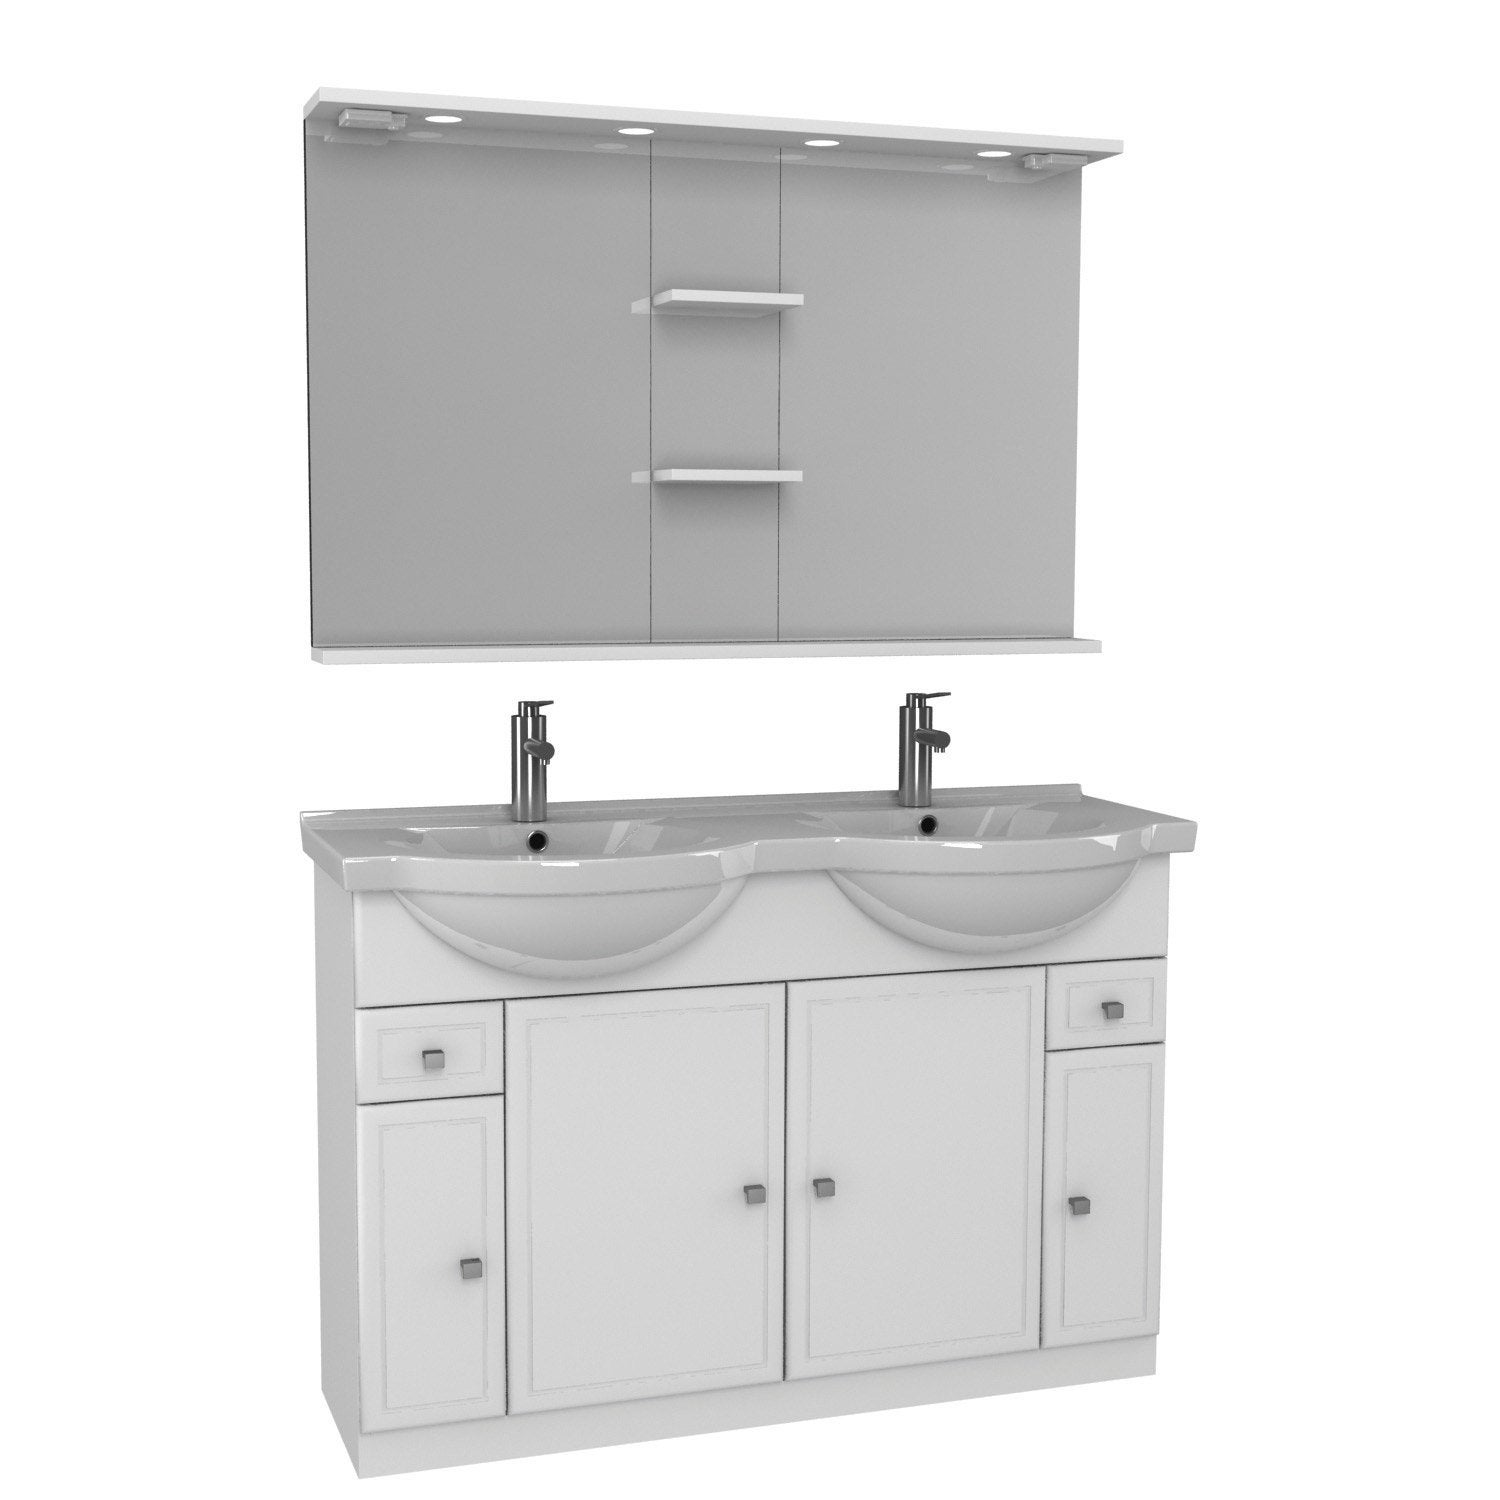 Meuble sous vasque x x cm blanc galice for Sous lavabo leroy merlin